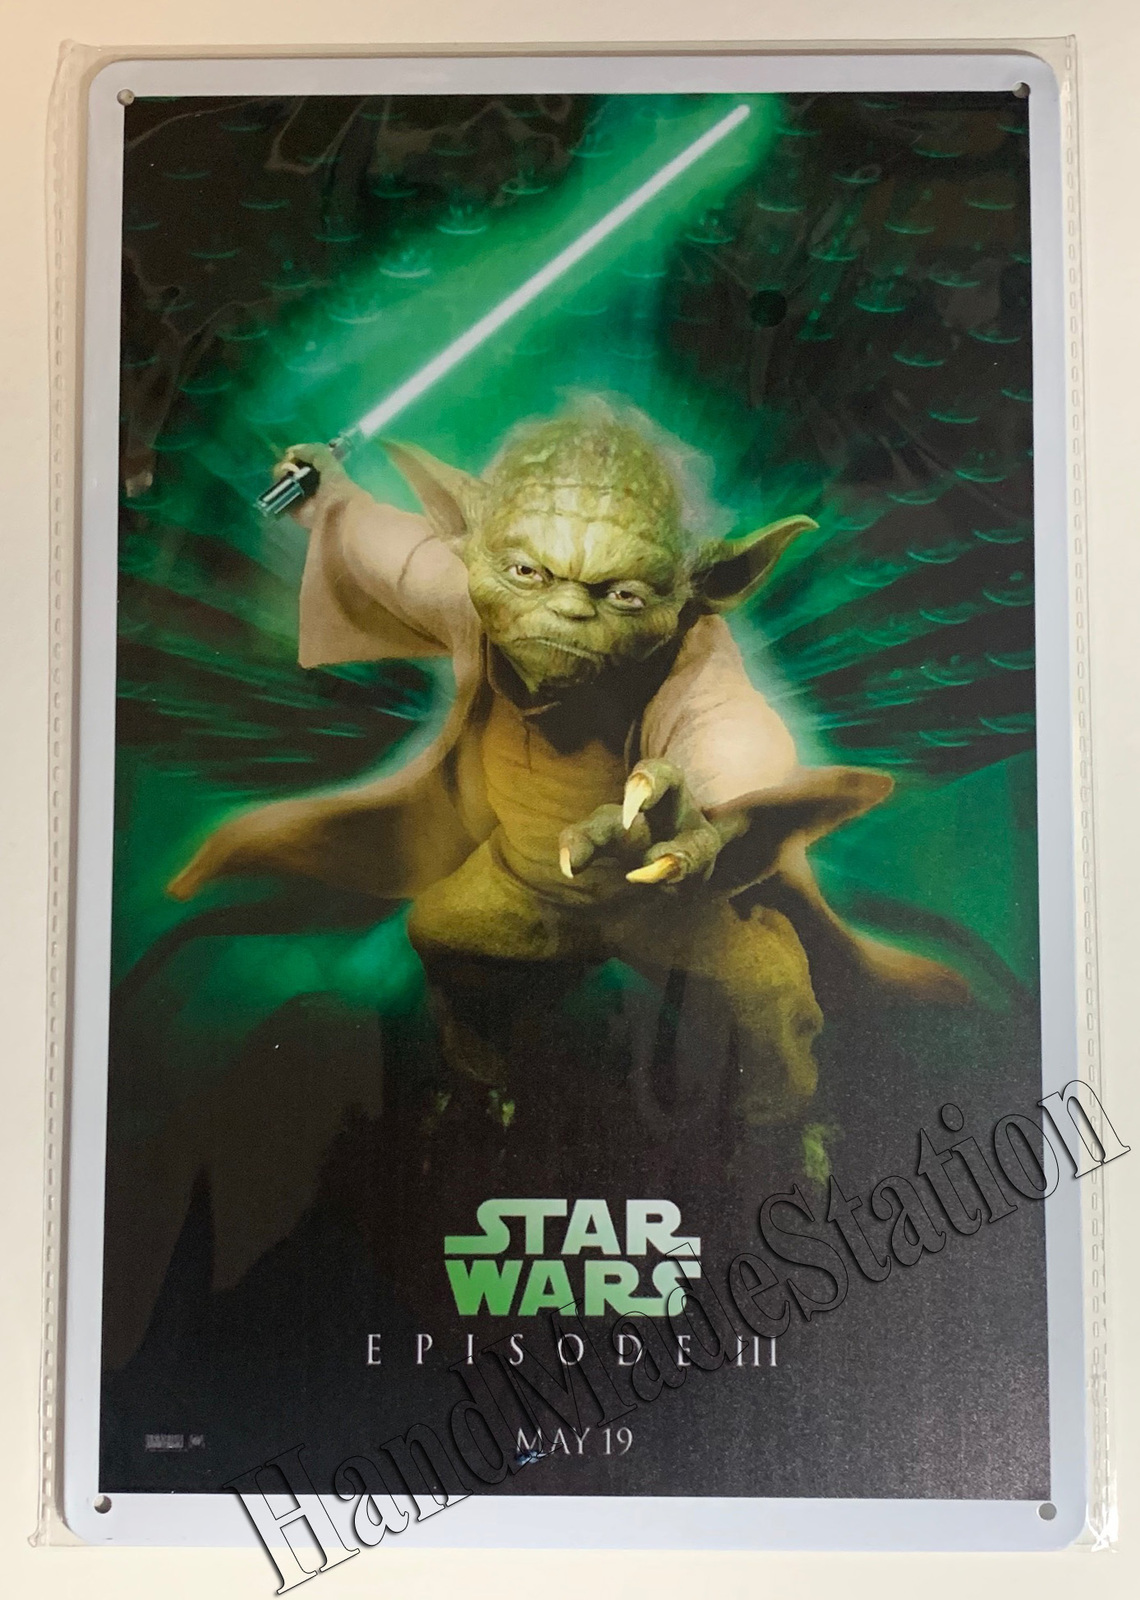 "Star Wars Yoda Episode III Wall Metal Sign plate Home decor 11.75"" x 7.8"""